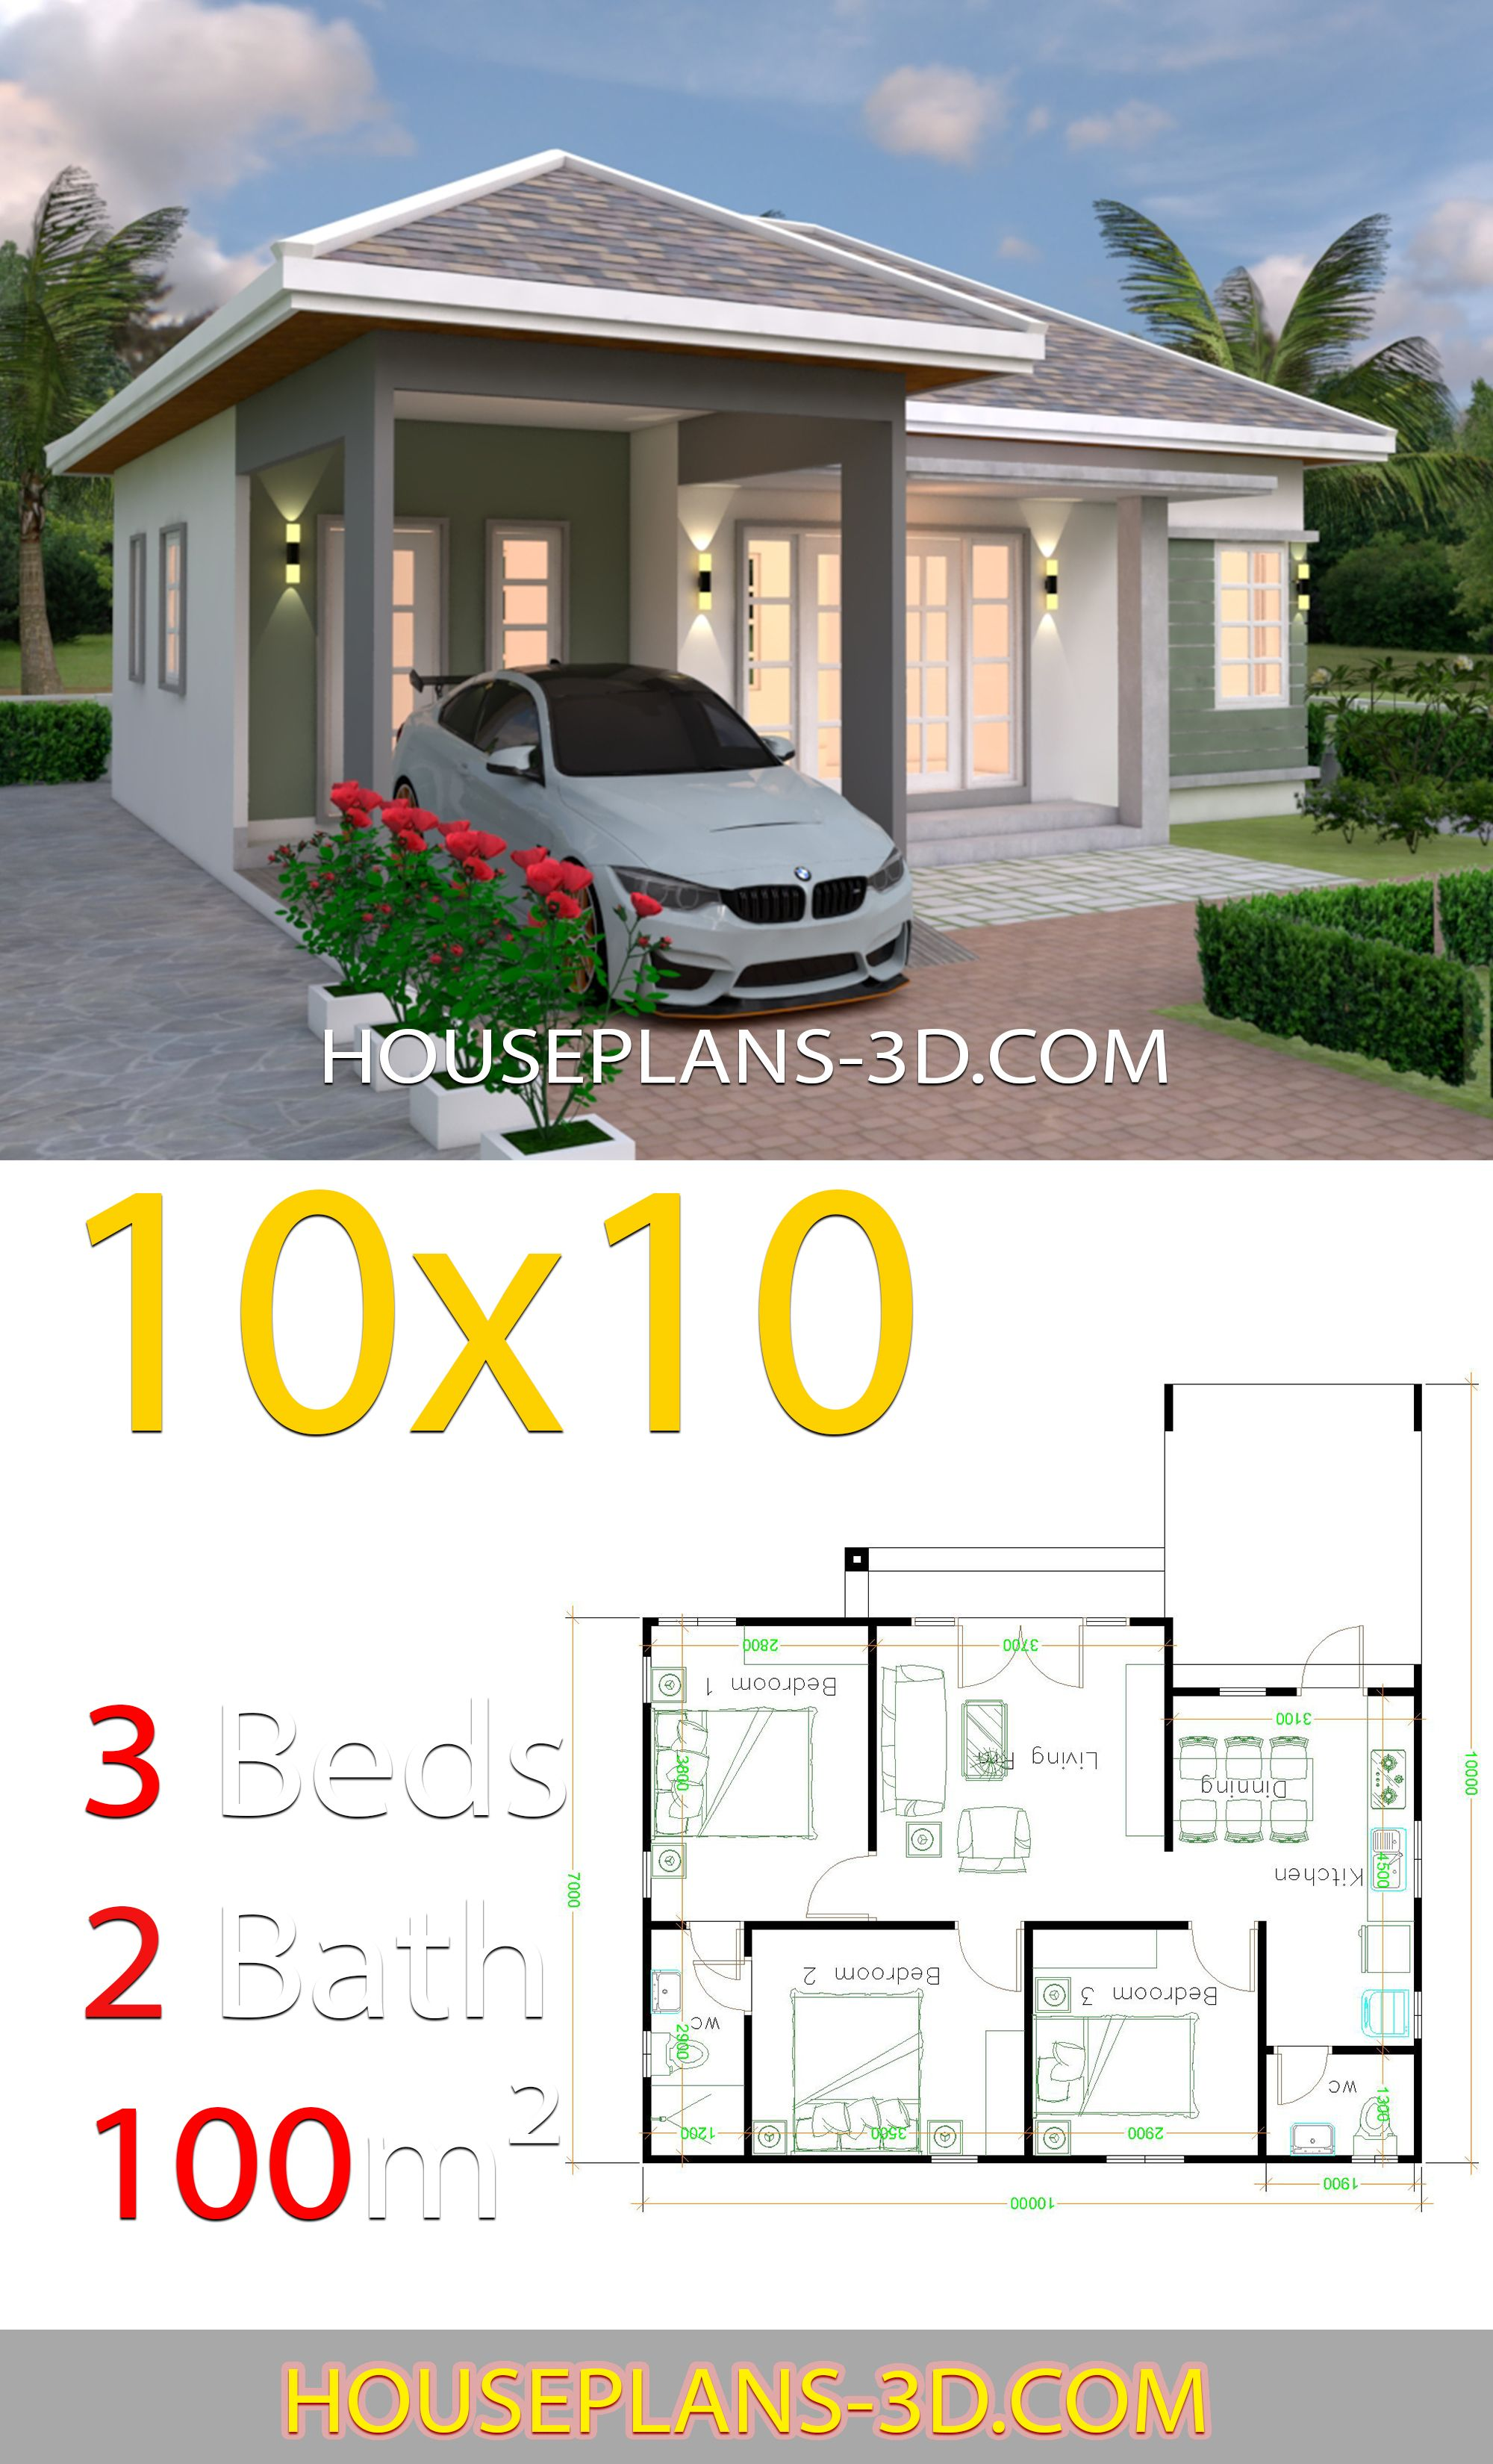 Interior House Design Plans 10x10 With 3 Bedrooms Full Plans In